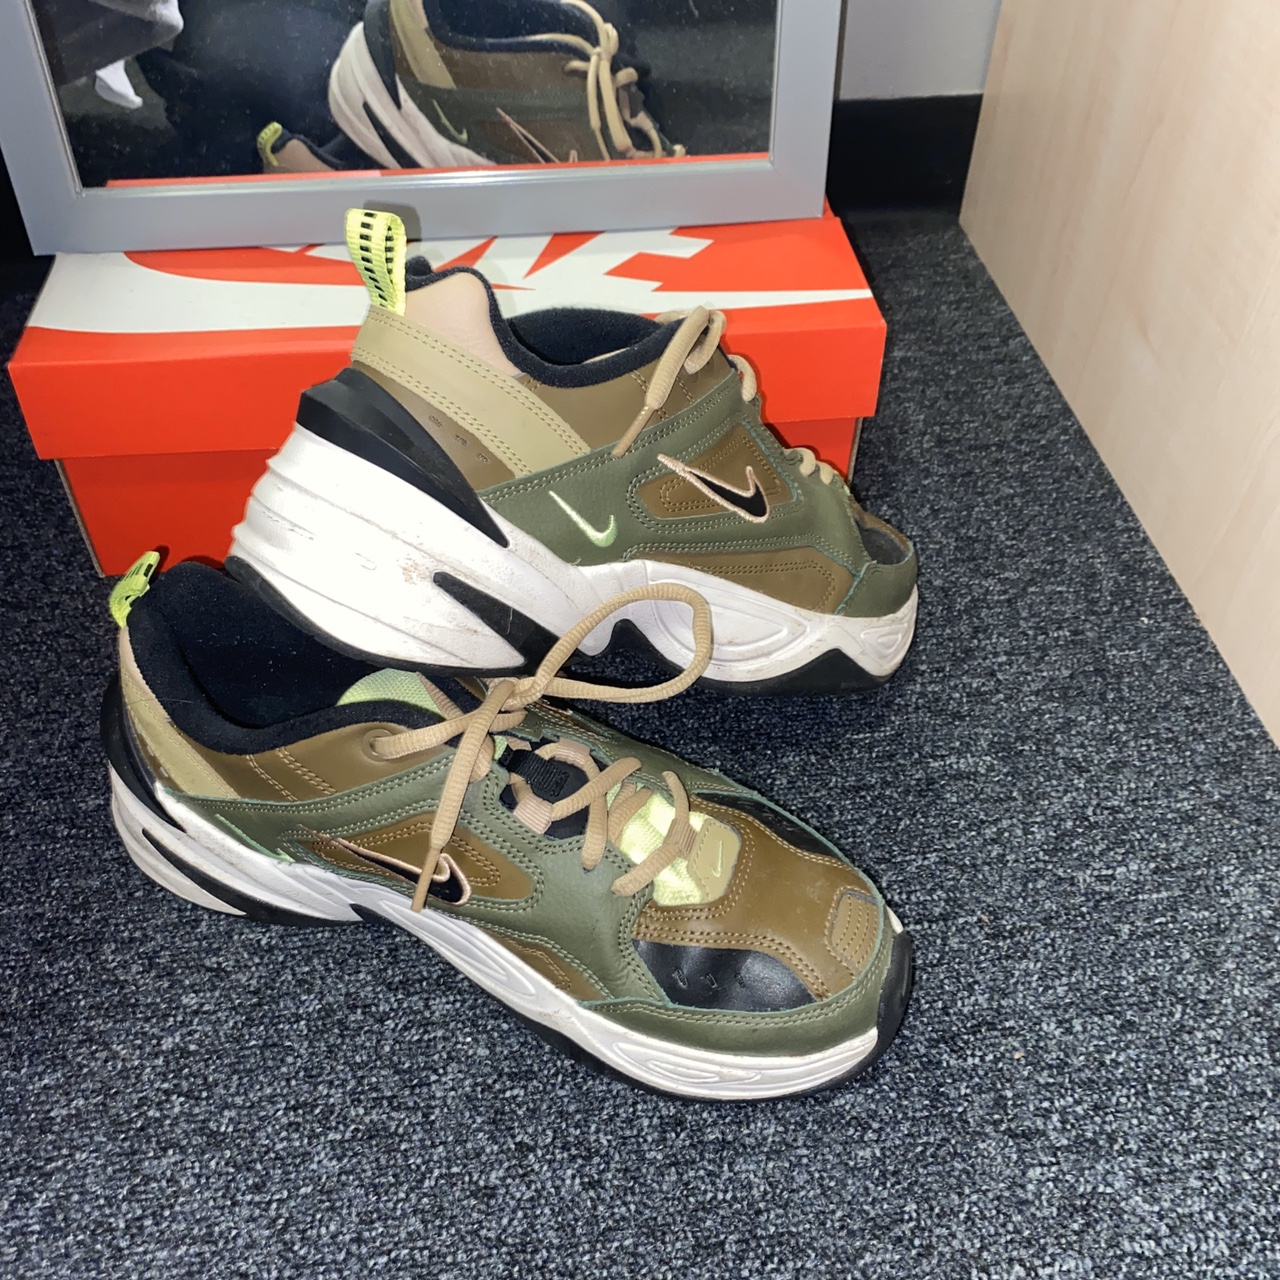 Selling these Nike m2k Tekno trainers